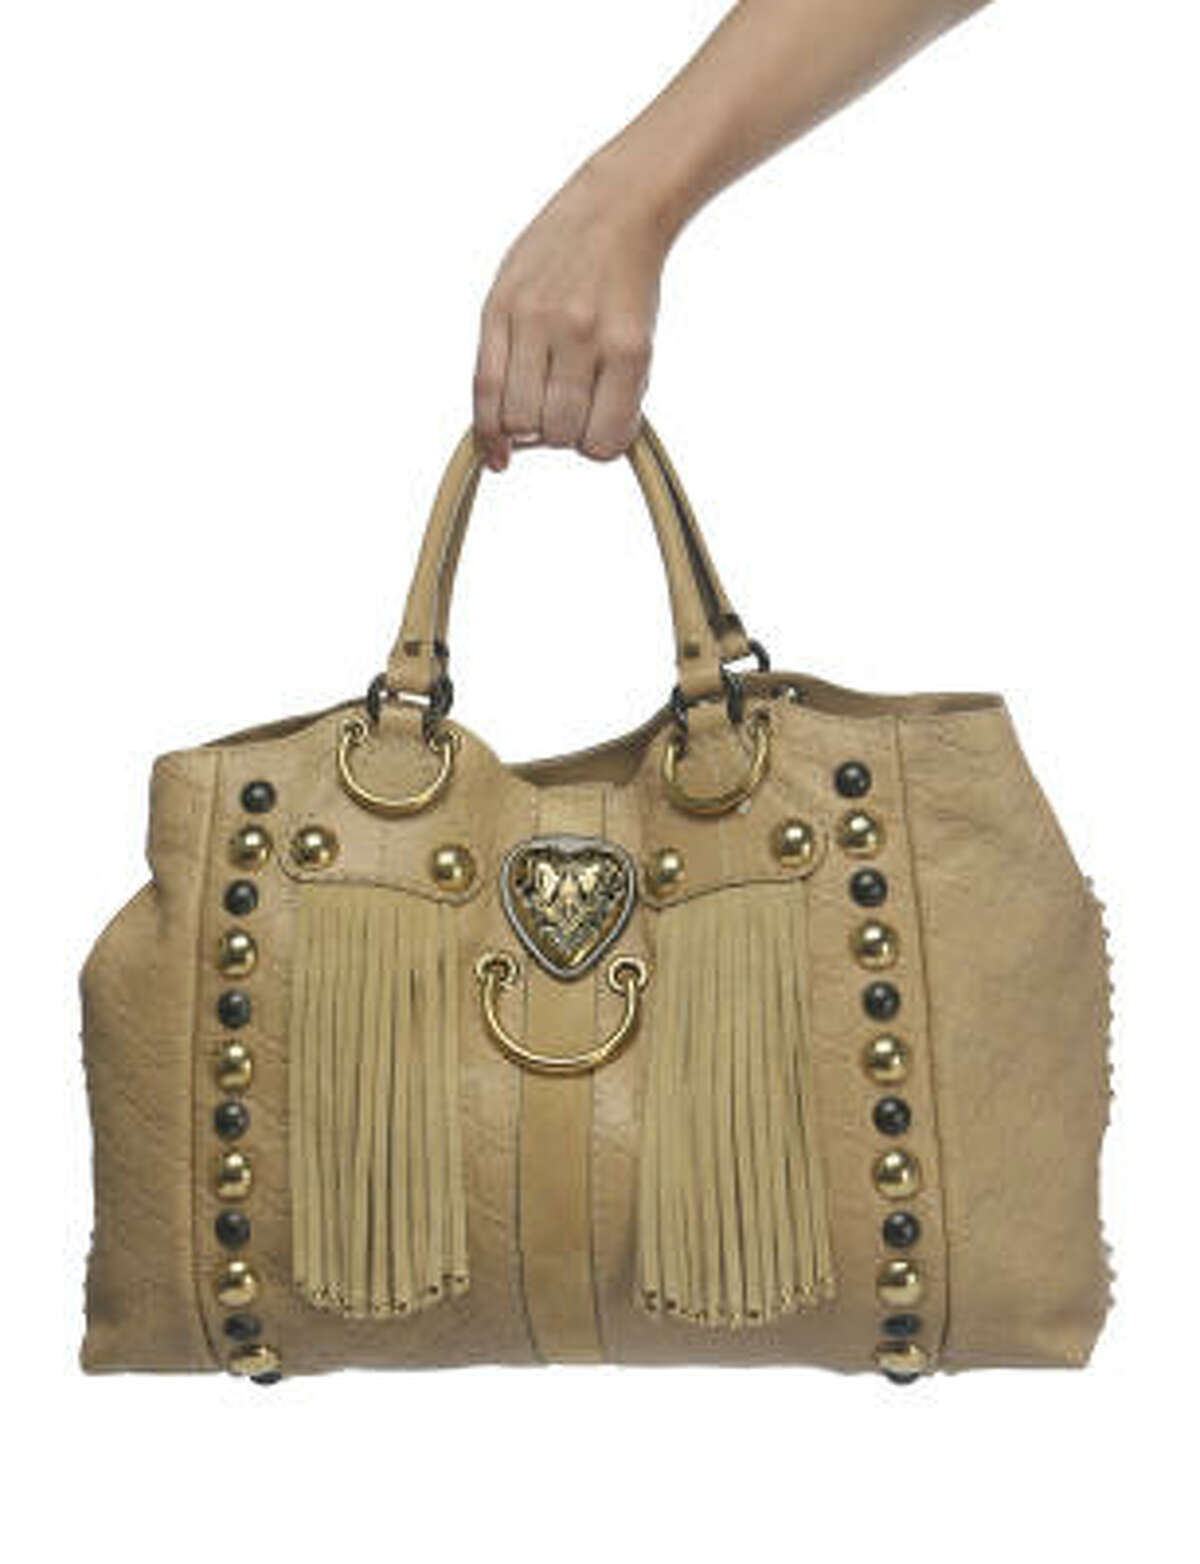 A suede, leather, fringed and embellished handbag by Gucci, $2,395.